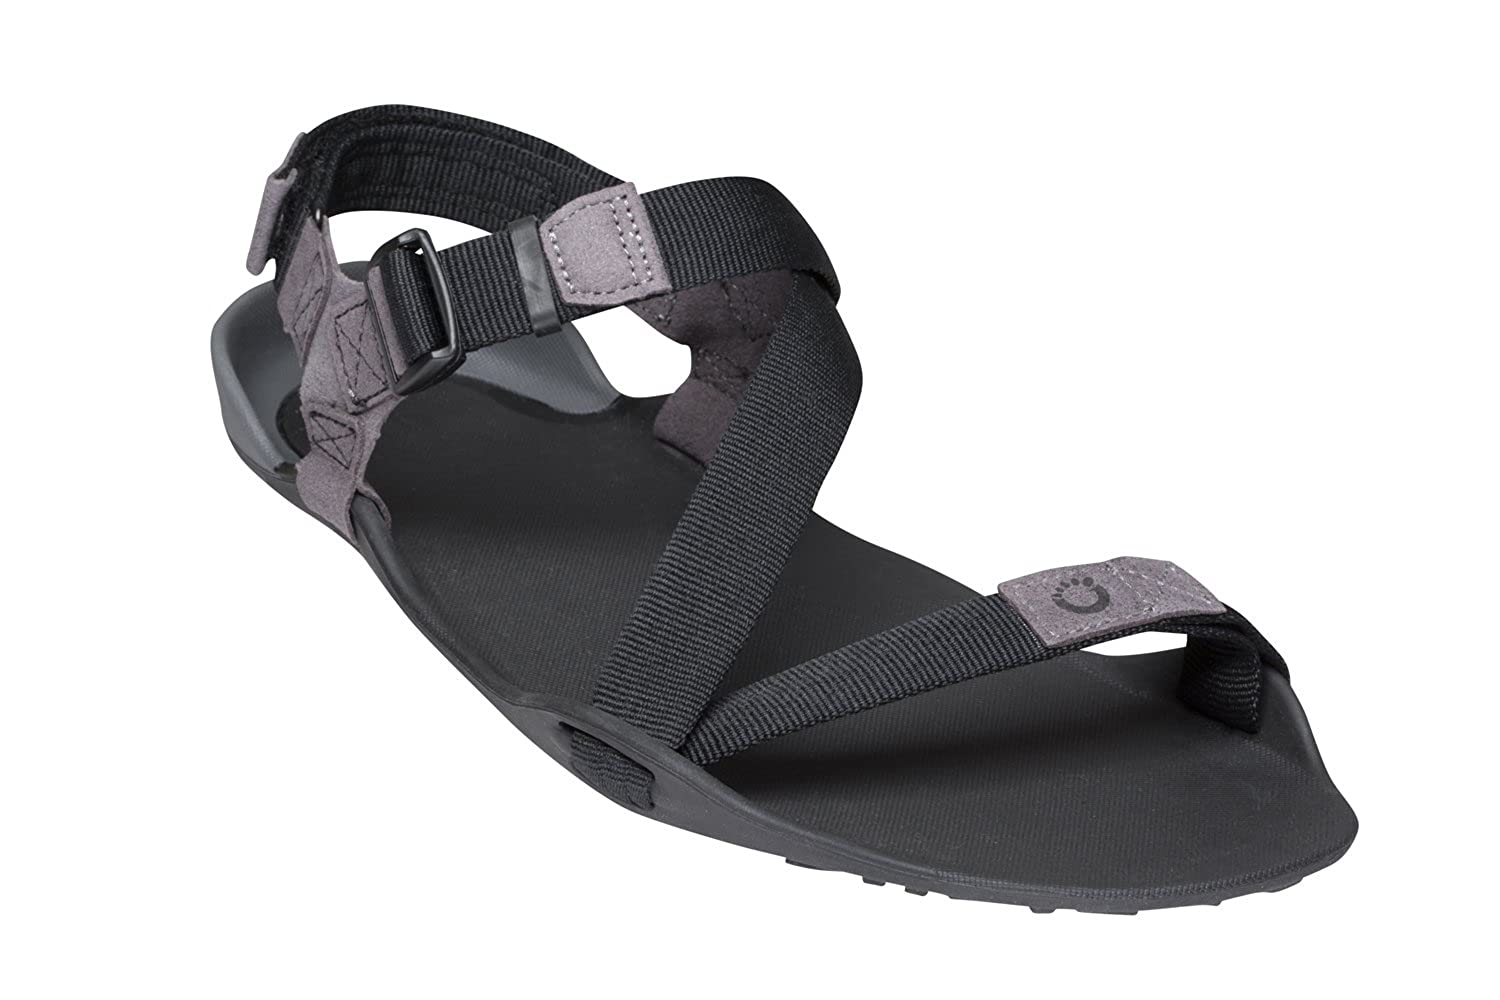 Xero Shoes Z-Trek Minimalist Sandal - Barefoot Hiking, Trail, Running Sport Sandals - Men's ZTM-CBCR-PP